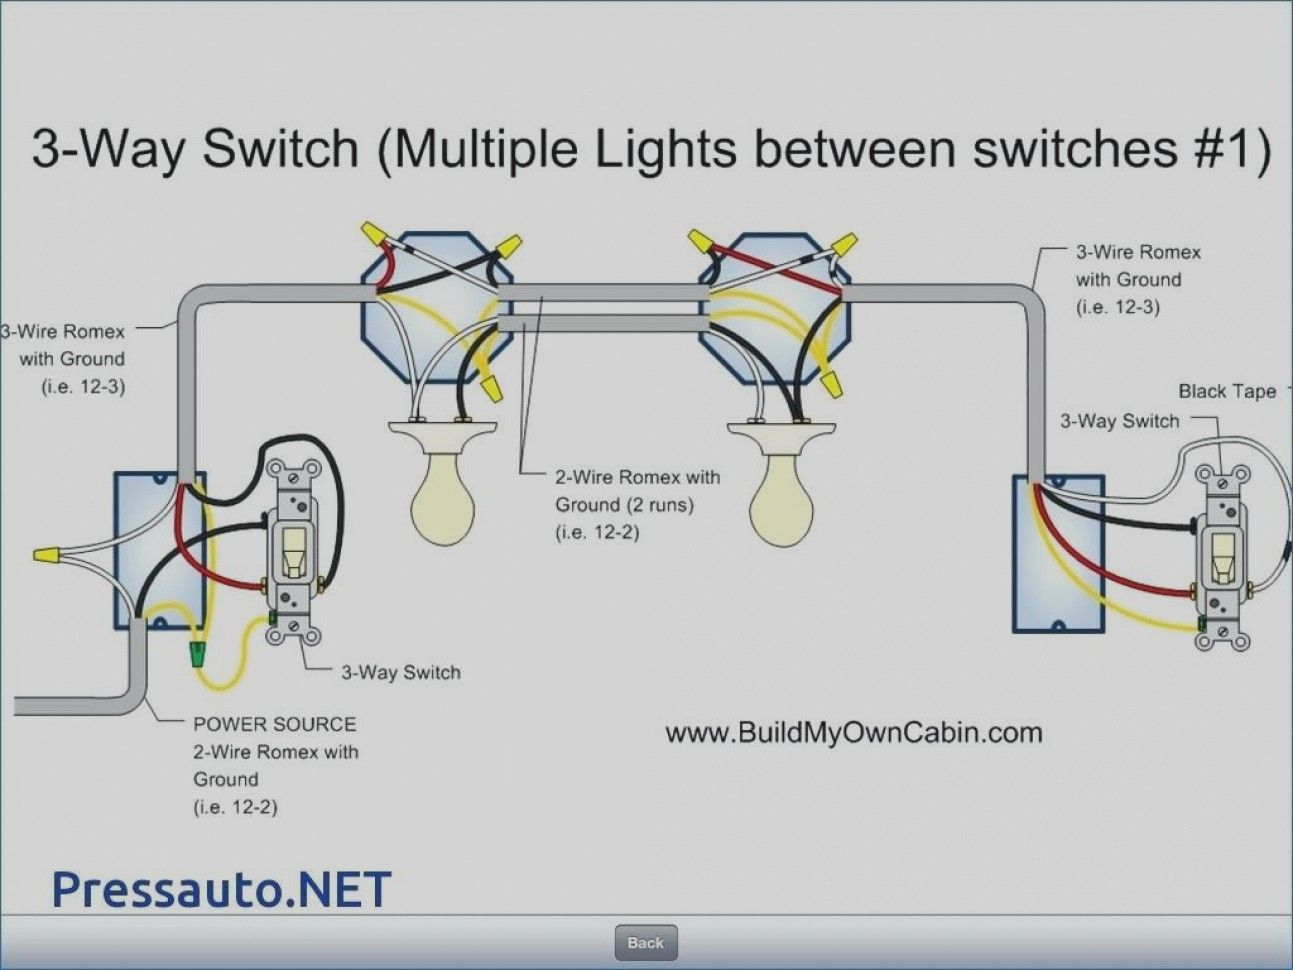 Wiring Diagram For Three Way Switch With Multiple Lights Light Switch Wiring 3 Way Switch Wiring Home Electrical Wiring